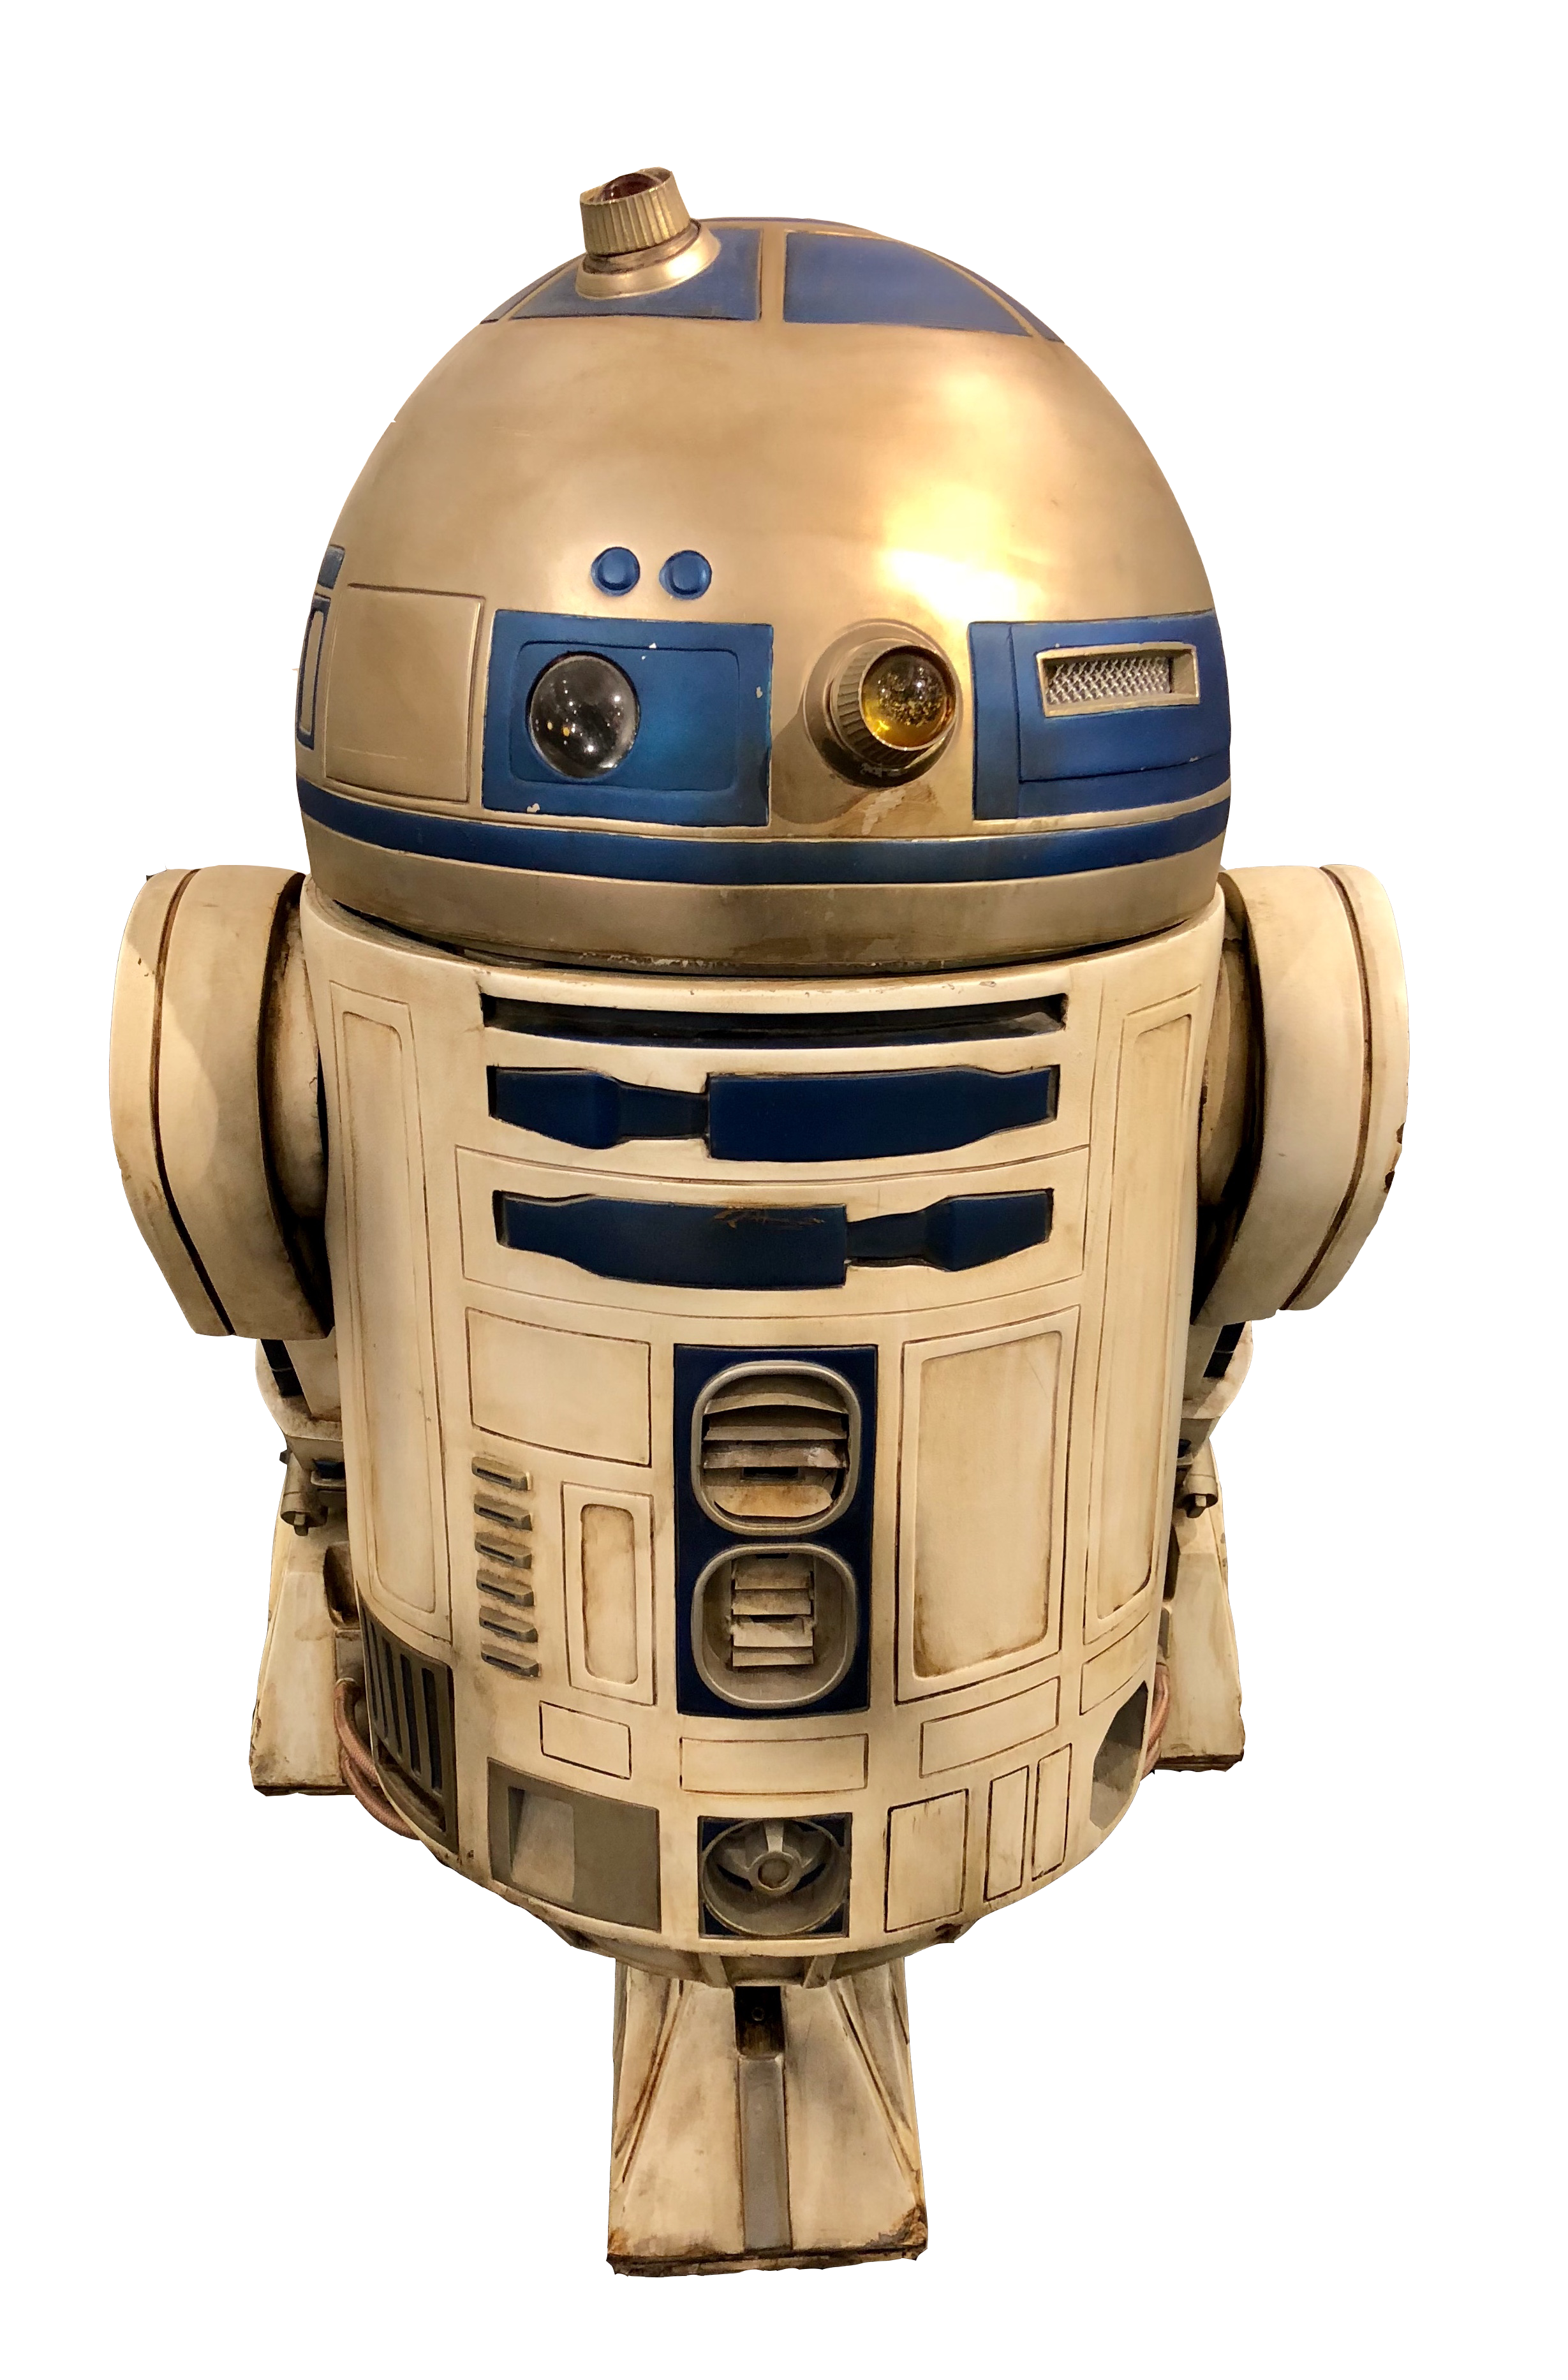 """This is the original, fully robotic R2D2, which was built in 1997, that operated daily at the Disney-MGM Studios at Walt Disney World. At the time, it was initially created for us in """"Star Wars Weekends"""" which ran from May to June of that year. In 2001, it was then used in the """"Star Wars and Motorcars""""parade, requiring it to travel nearly one mile a day, 7 days a week, 365 days a year!    This robot also appeared in numerous stage shows, meet and greet photo opps, and presentations at the theme parks , including the infamous """"Star Wars Weekends"""" throughout 2013."""